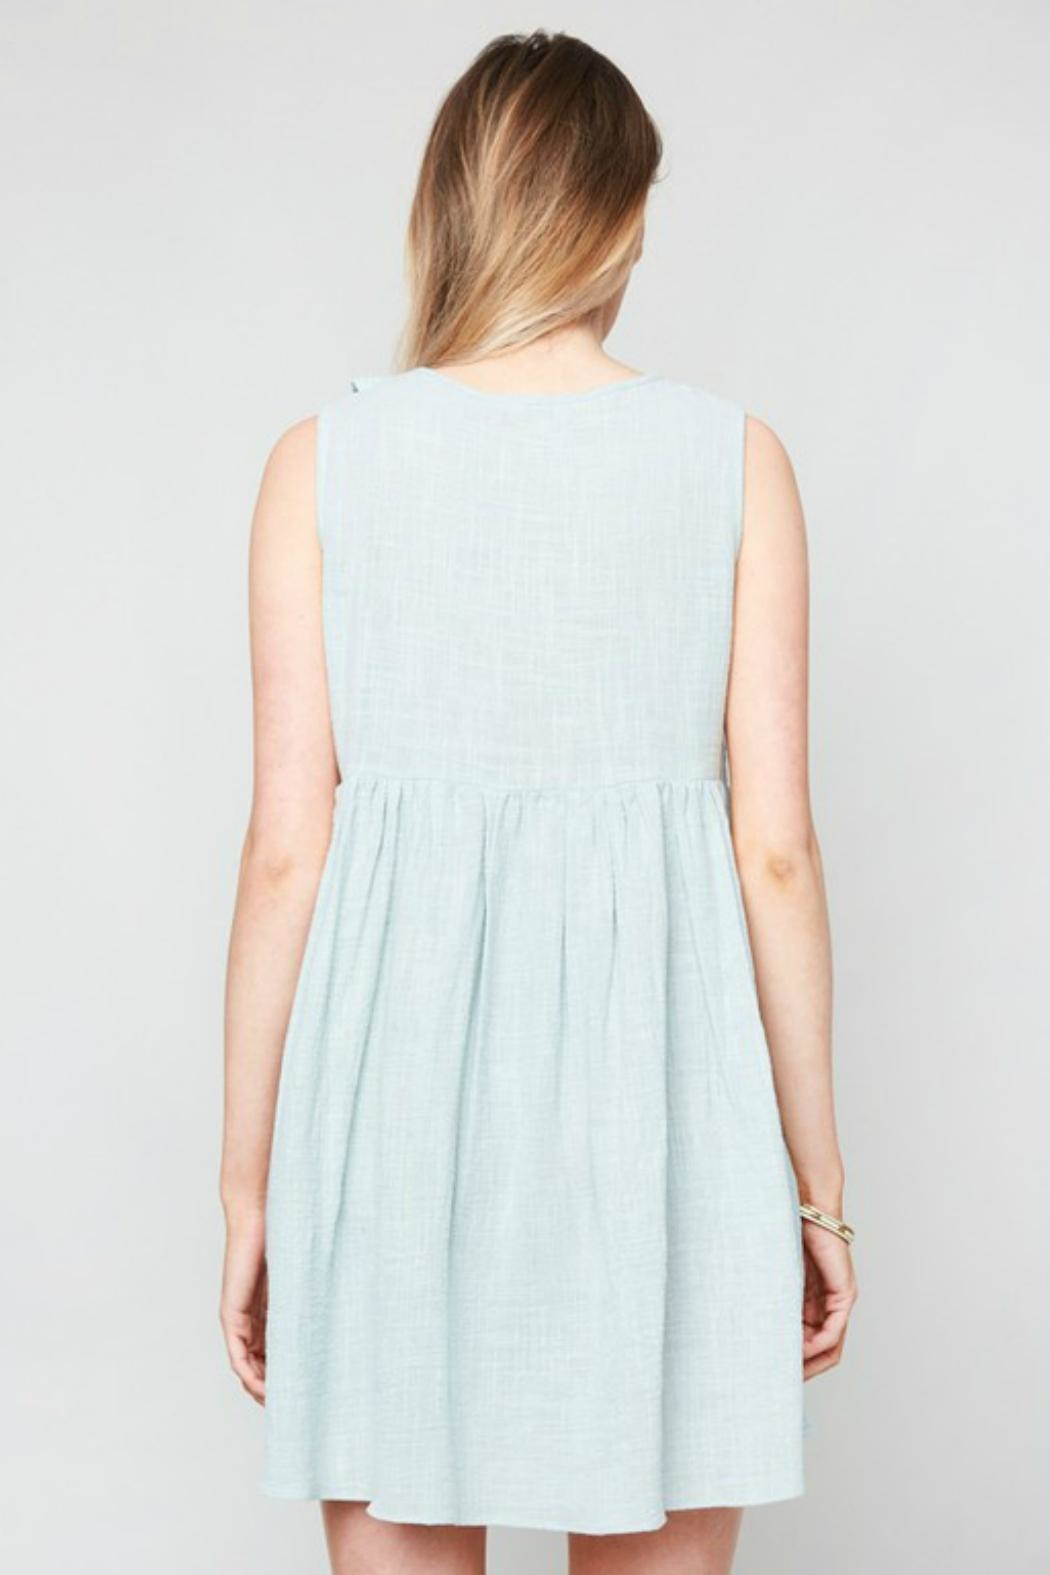 Hayden Los Angeles Ruffled Lace-Up Dress - Front Full Image